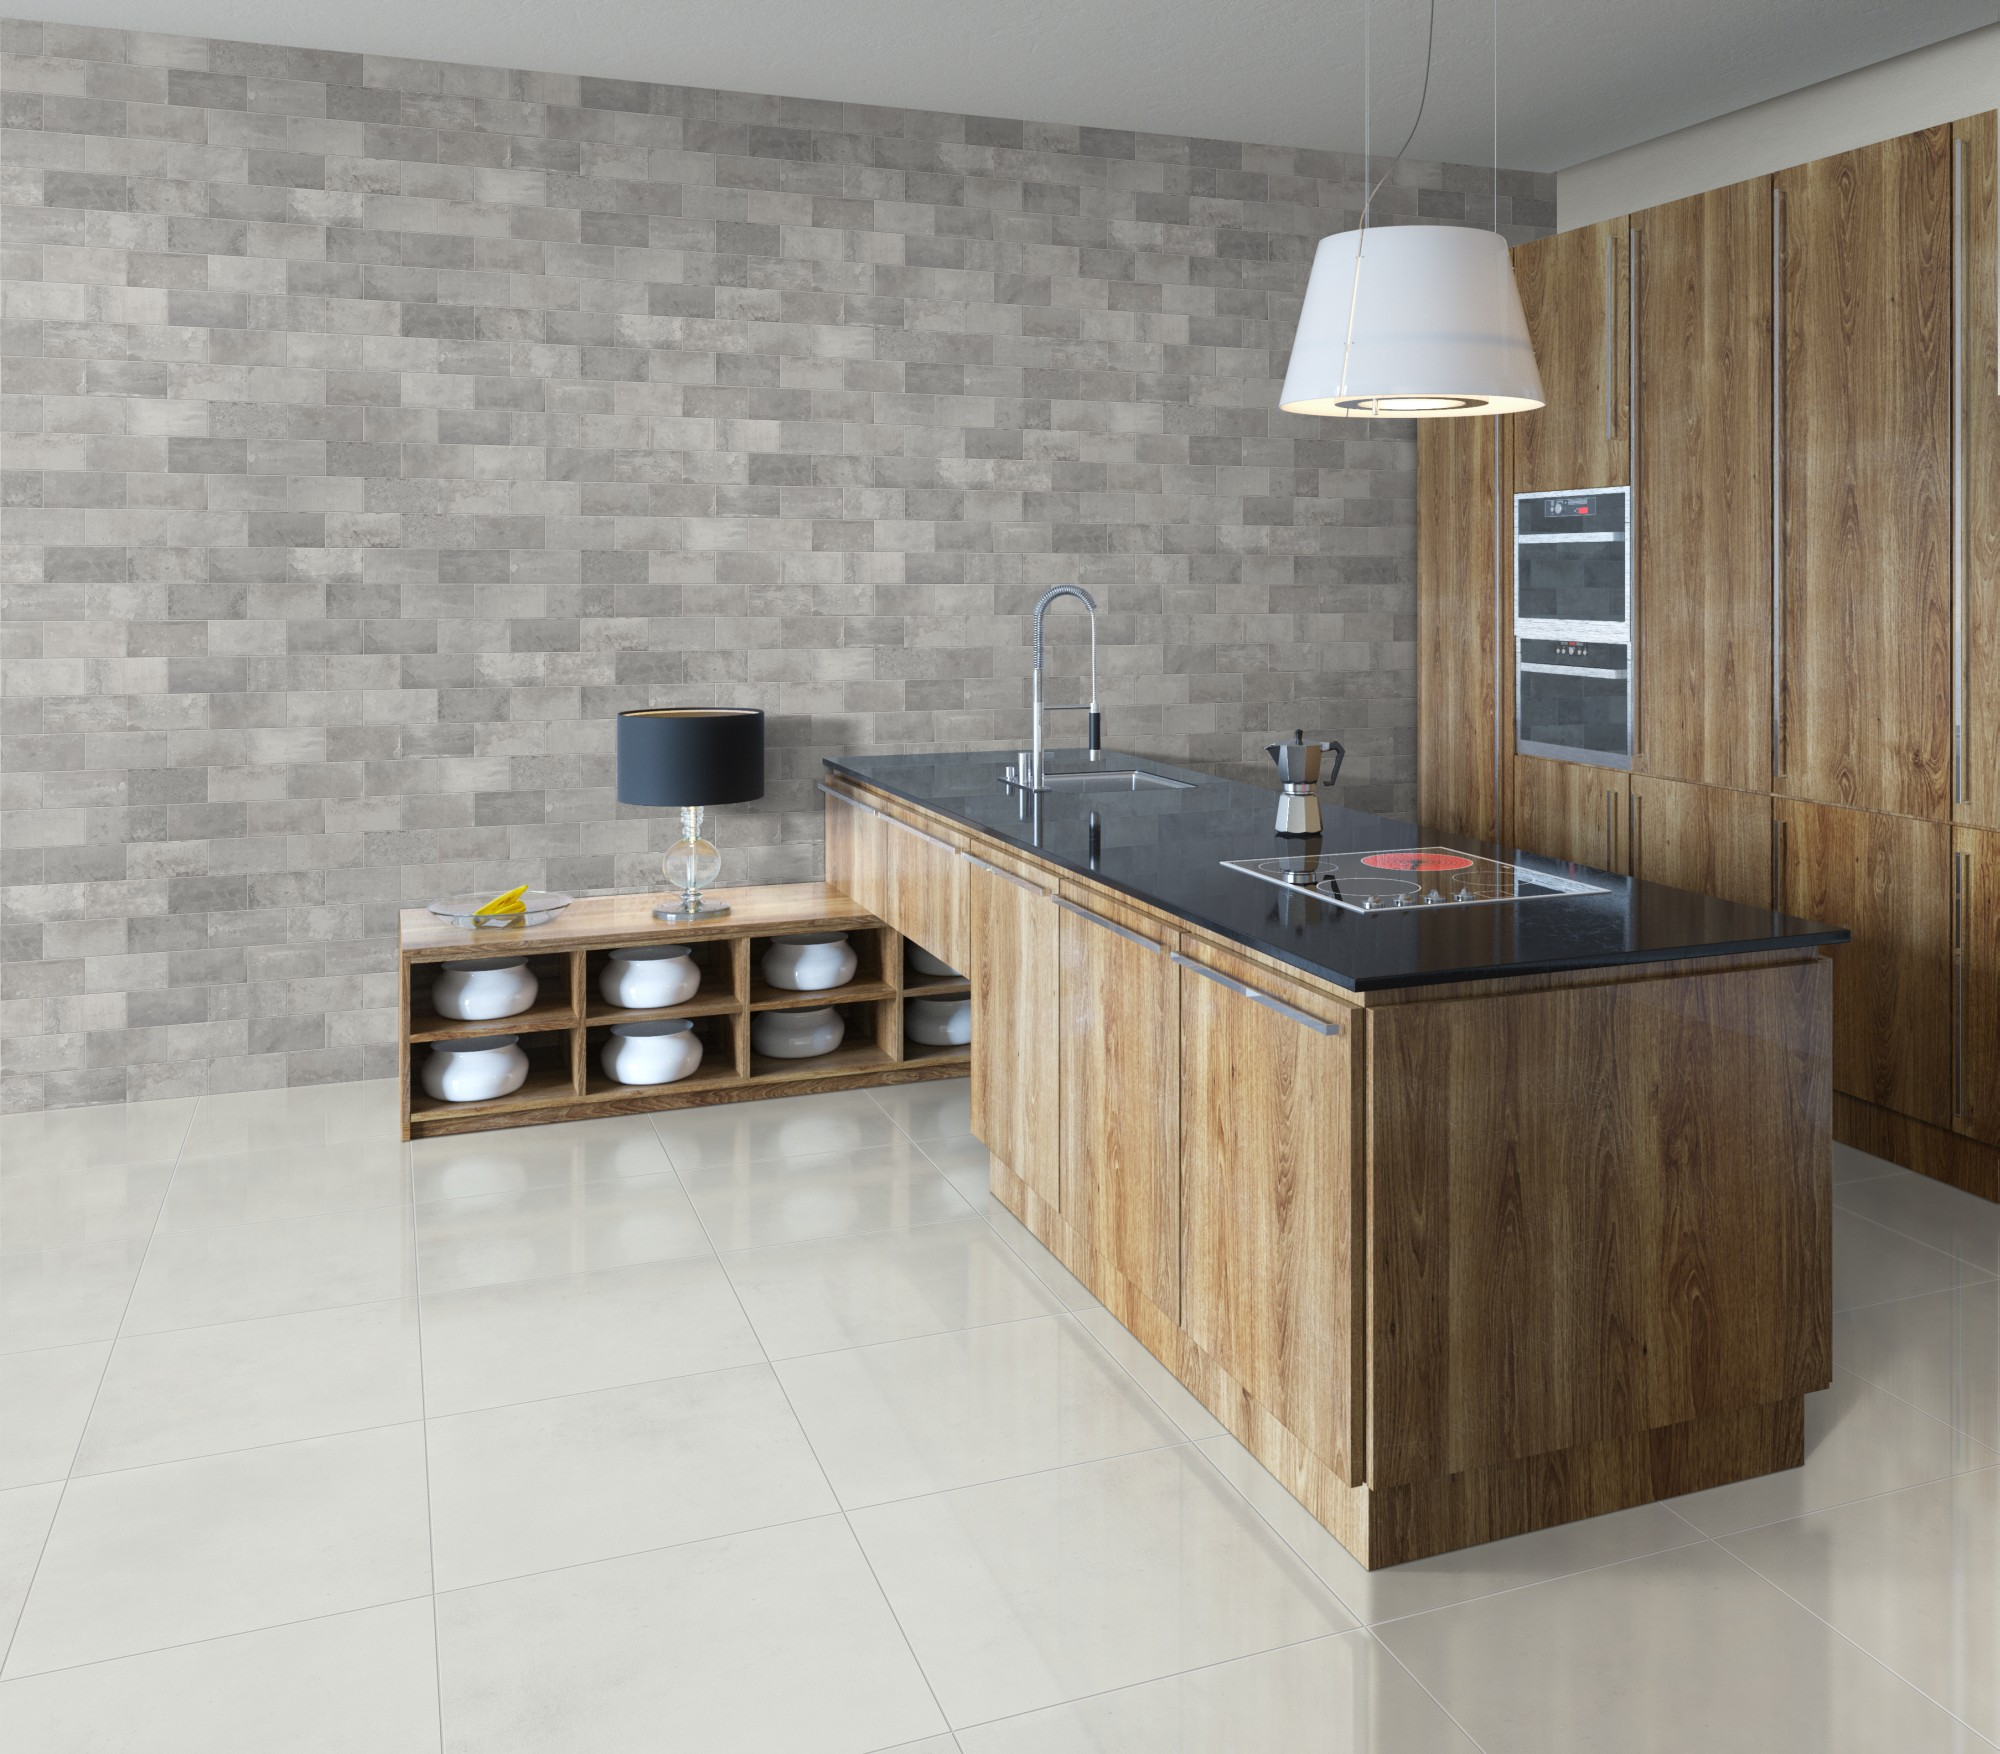 Kitchen Tiles Uk kitchen tiles - international tiles